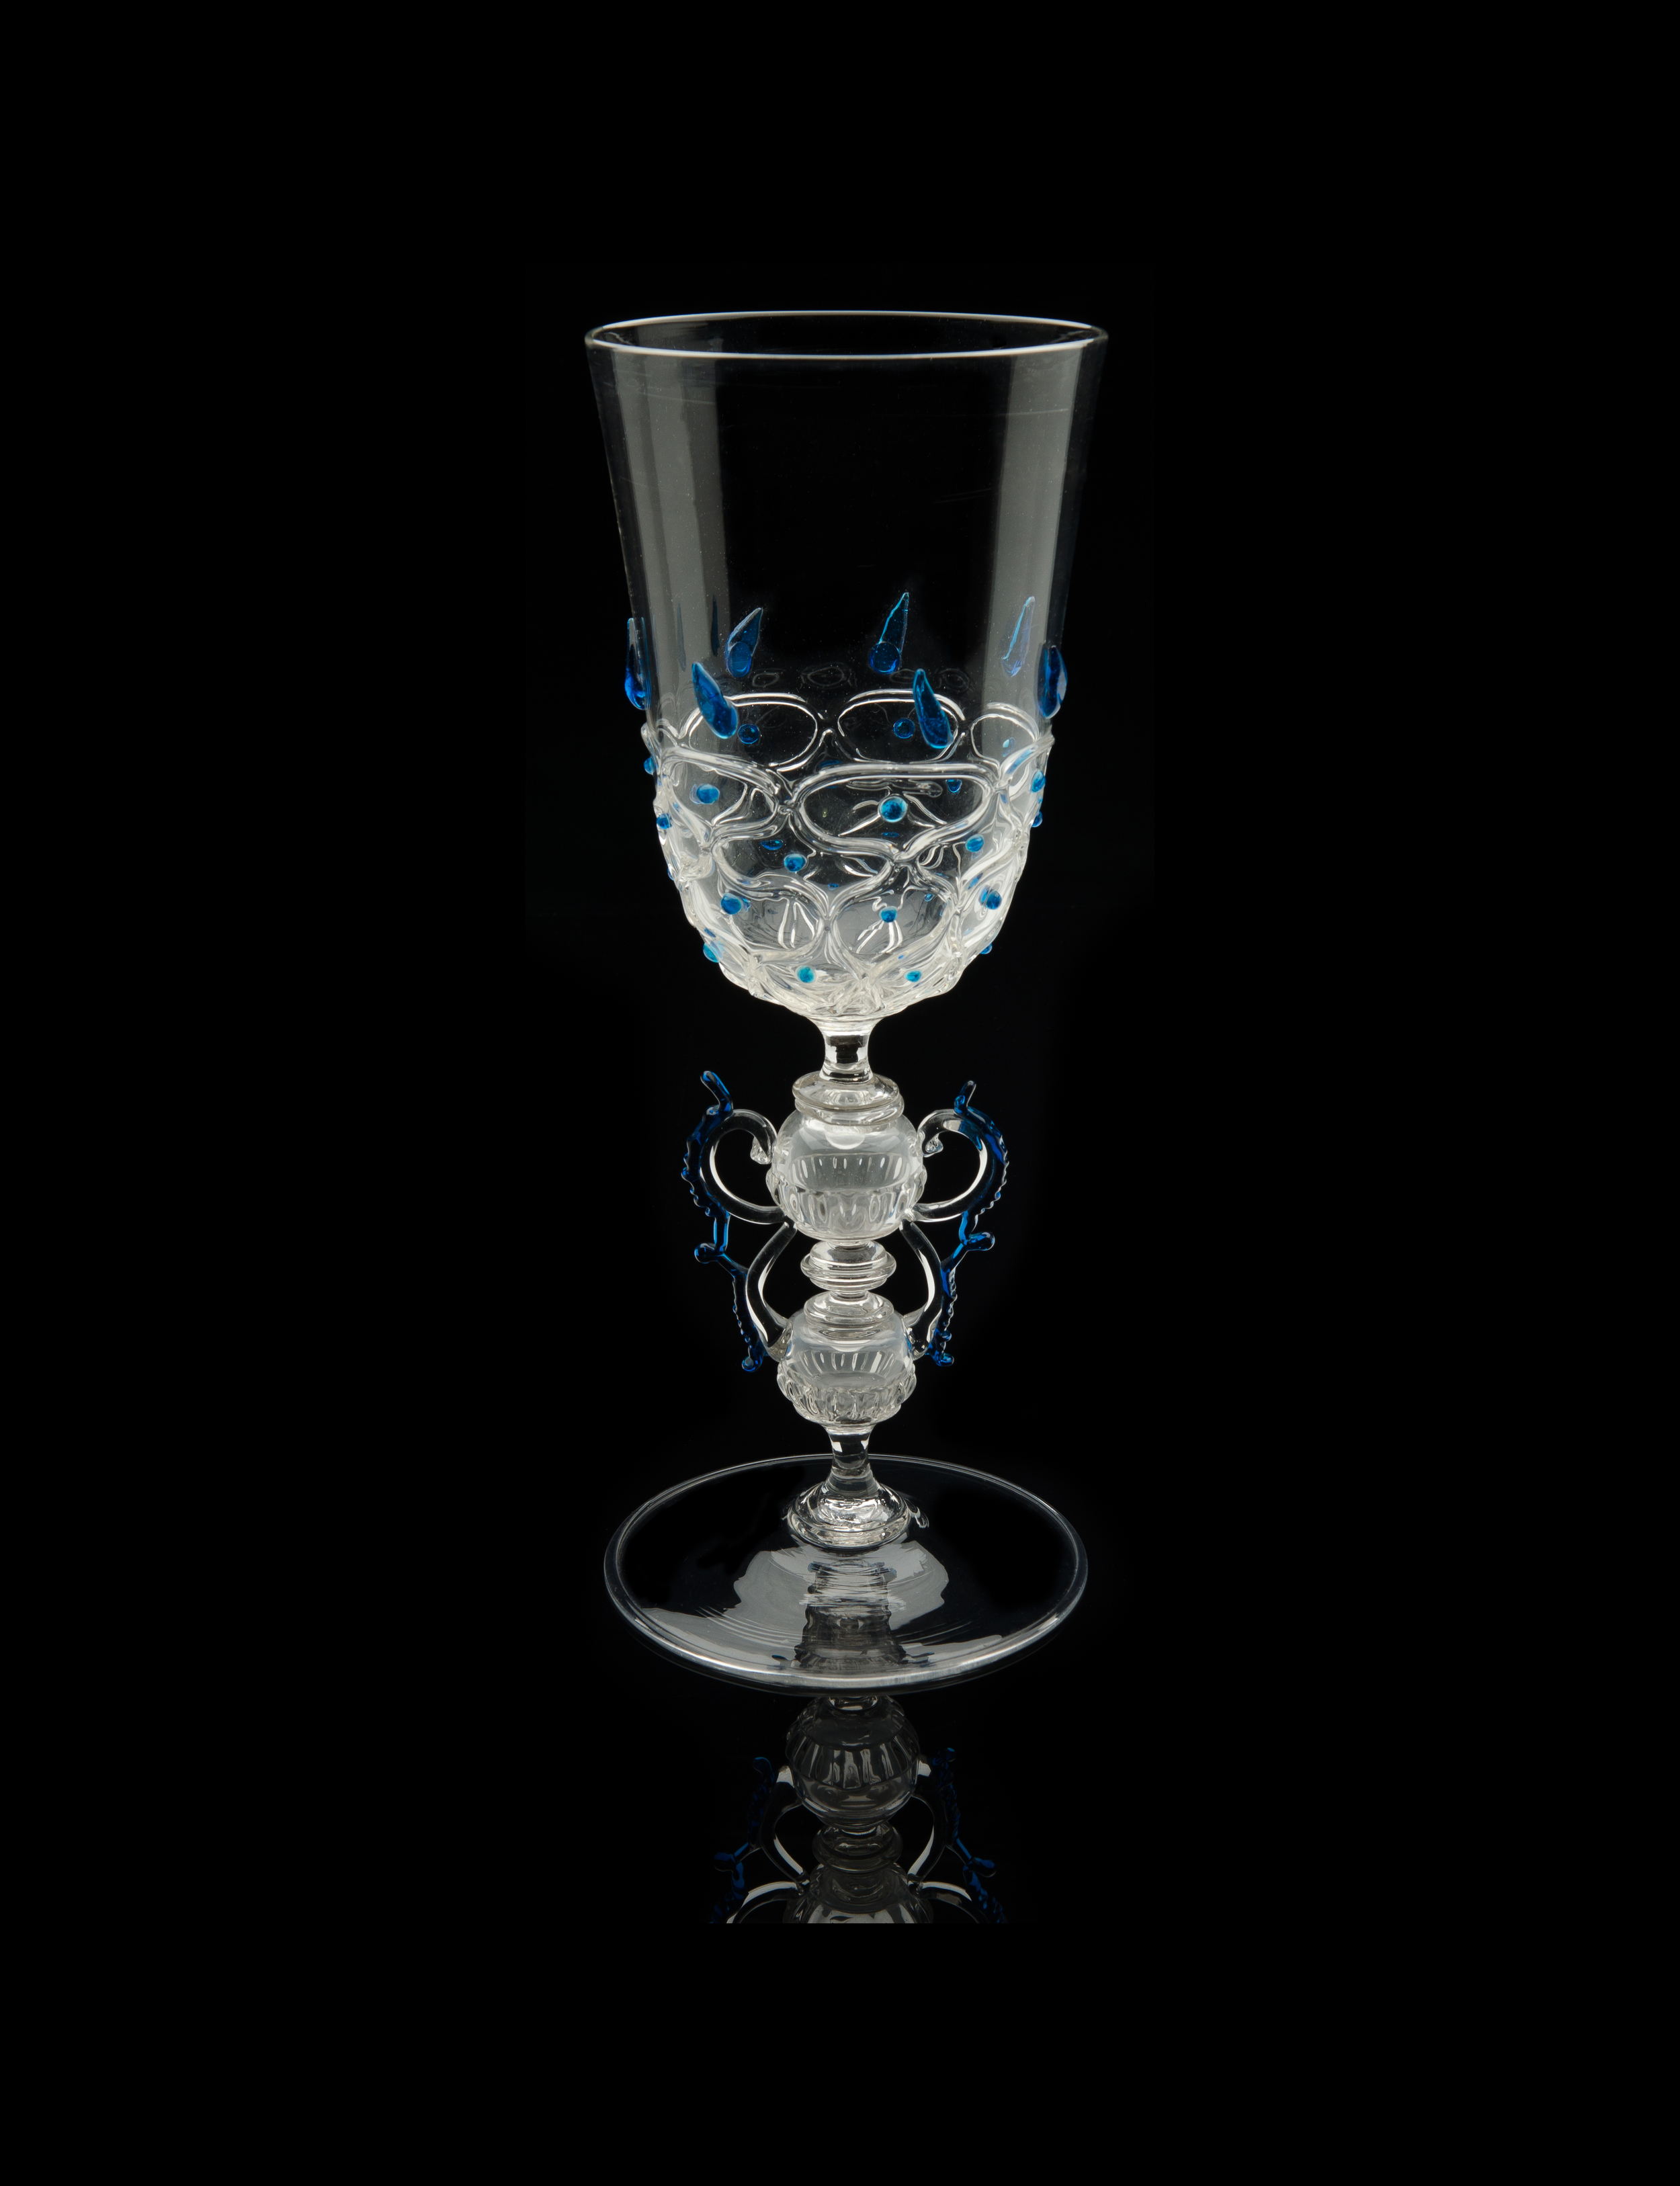 Salviati and Company, Winged Presentation Vase with Cobalt Prunts (circa 1900, glass, 14 1/2 x 5 3/8 x 5 3/8inches), VV.93